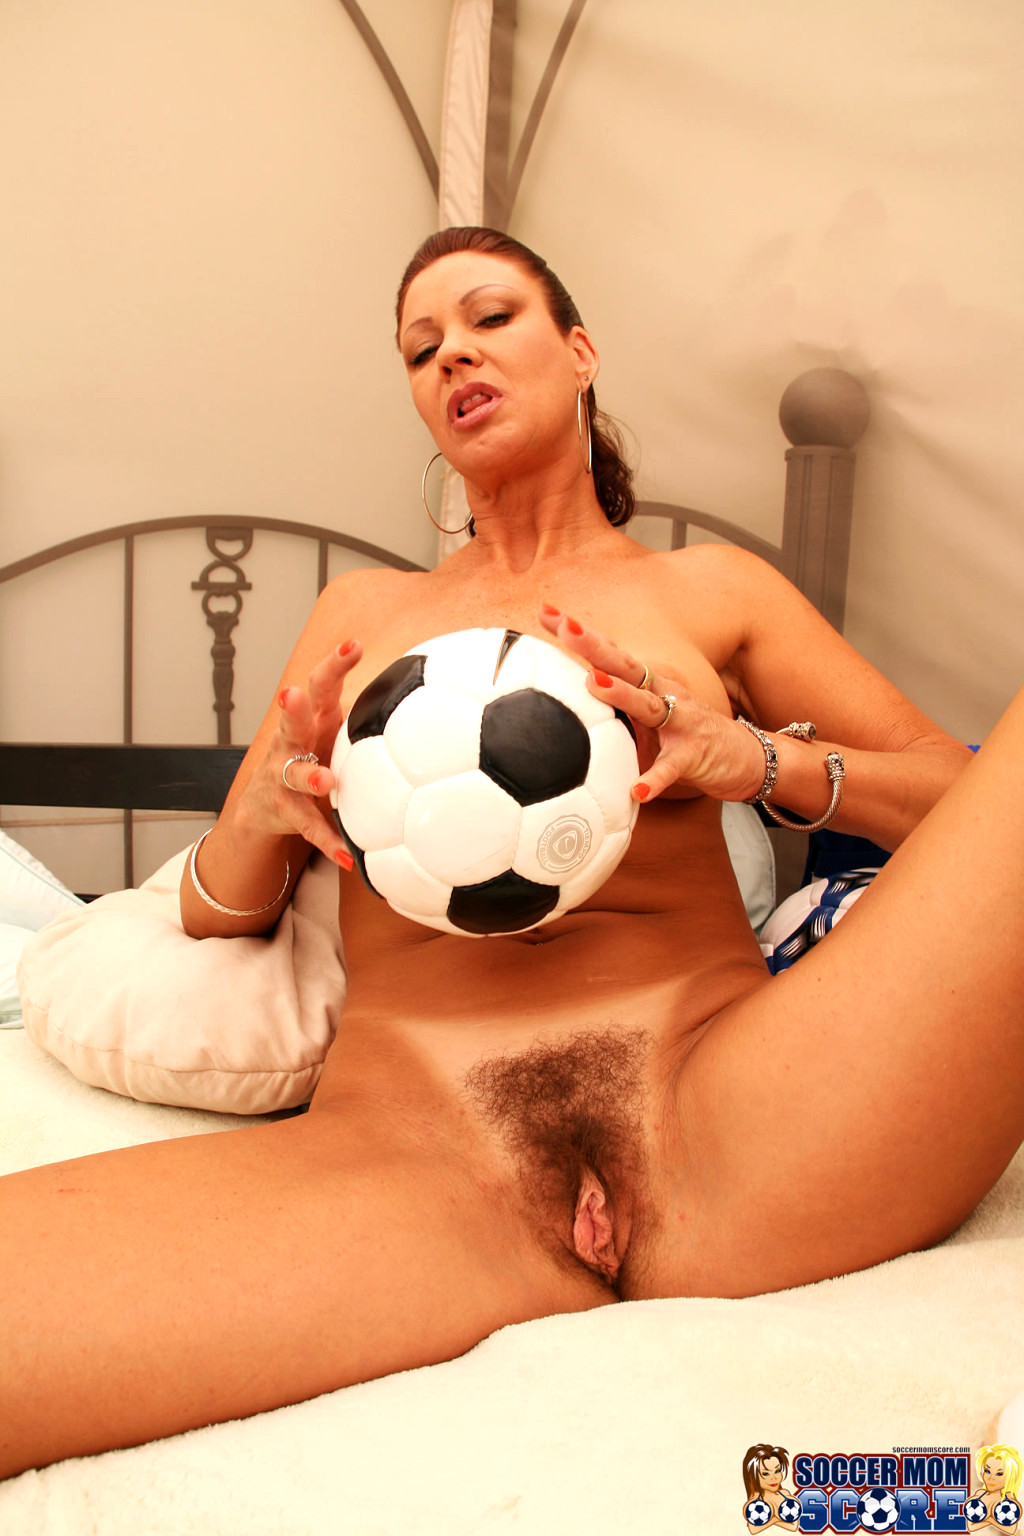 Naked soccer moms getting ducked, sexy army pin up girl